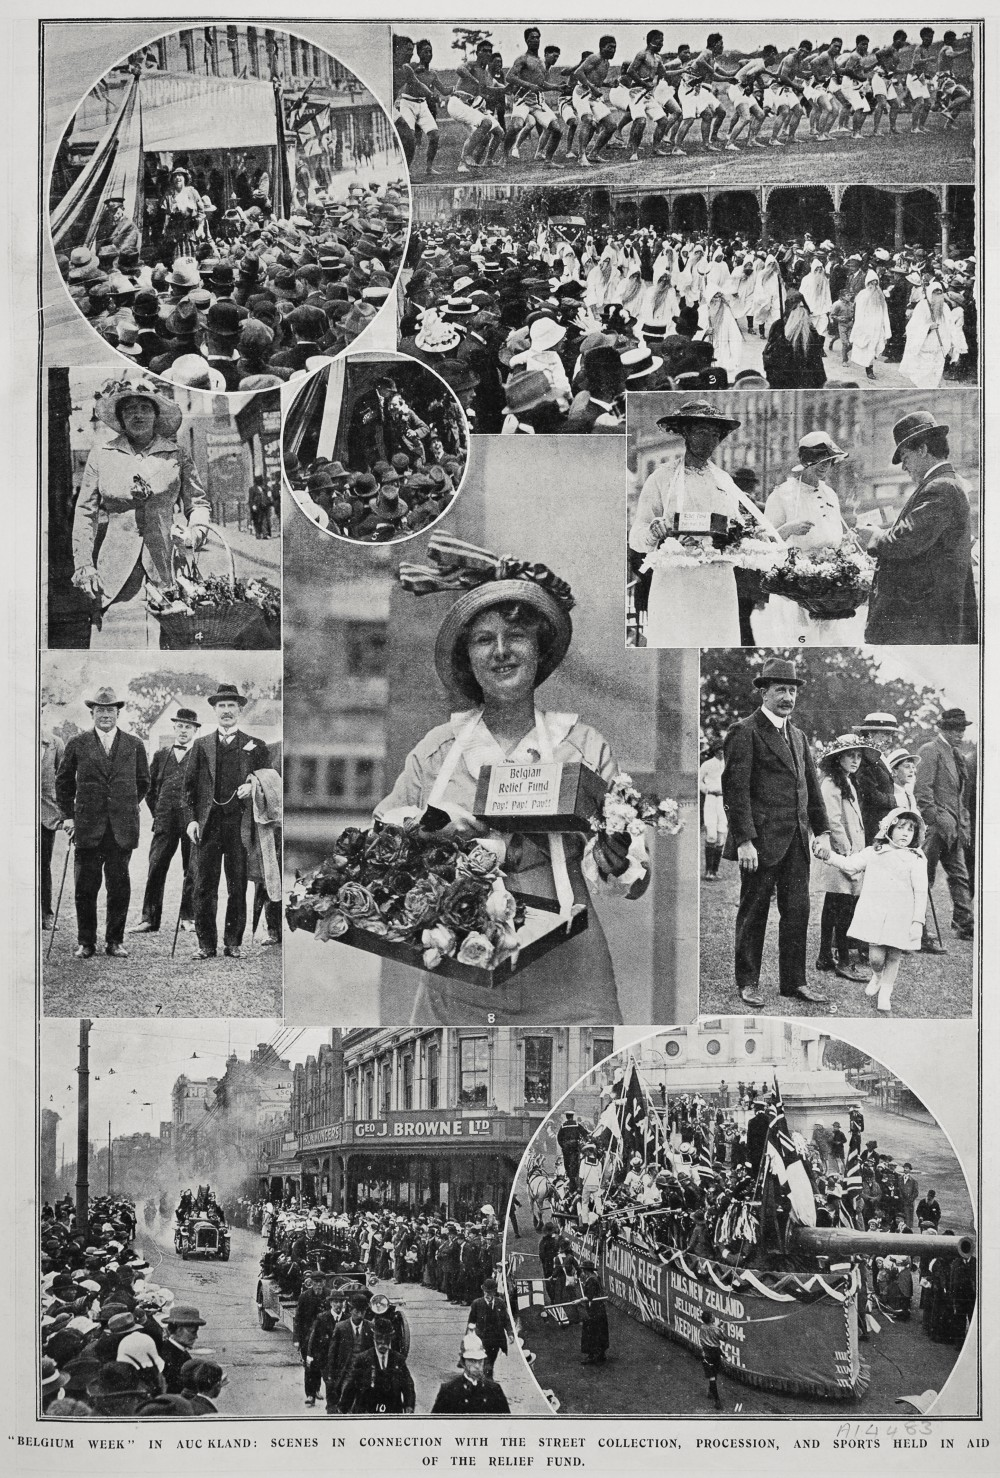 """Belgium week"" in Auckland: Scenes in connection with the street collection, procession, and sports held in aid of the relief fund. - Auckland Libraries"